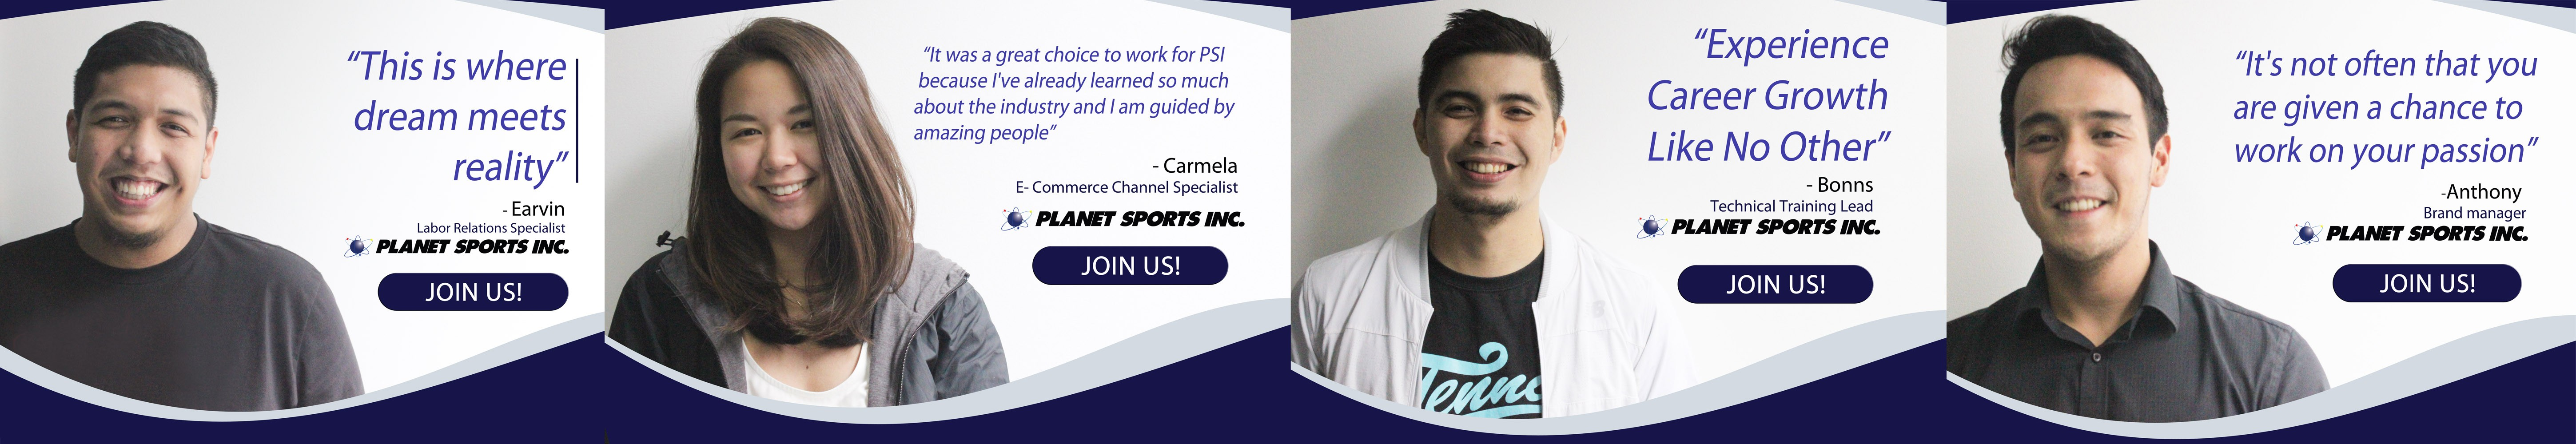 a9455f1486411 Planet Sports Inc. Careers cover image